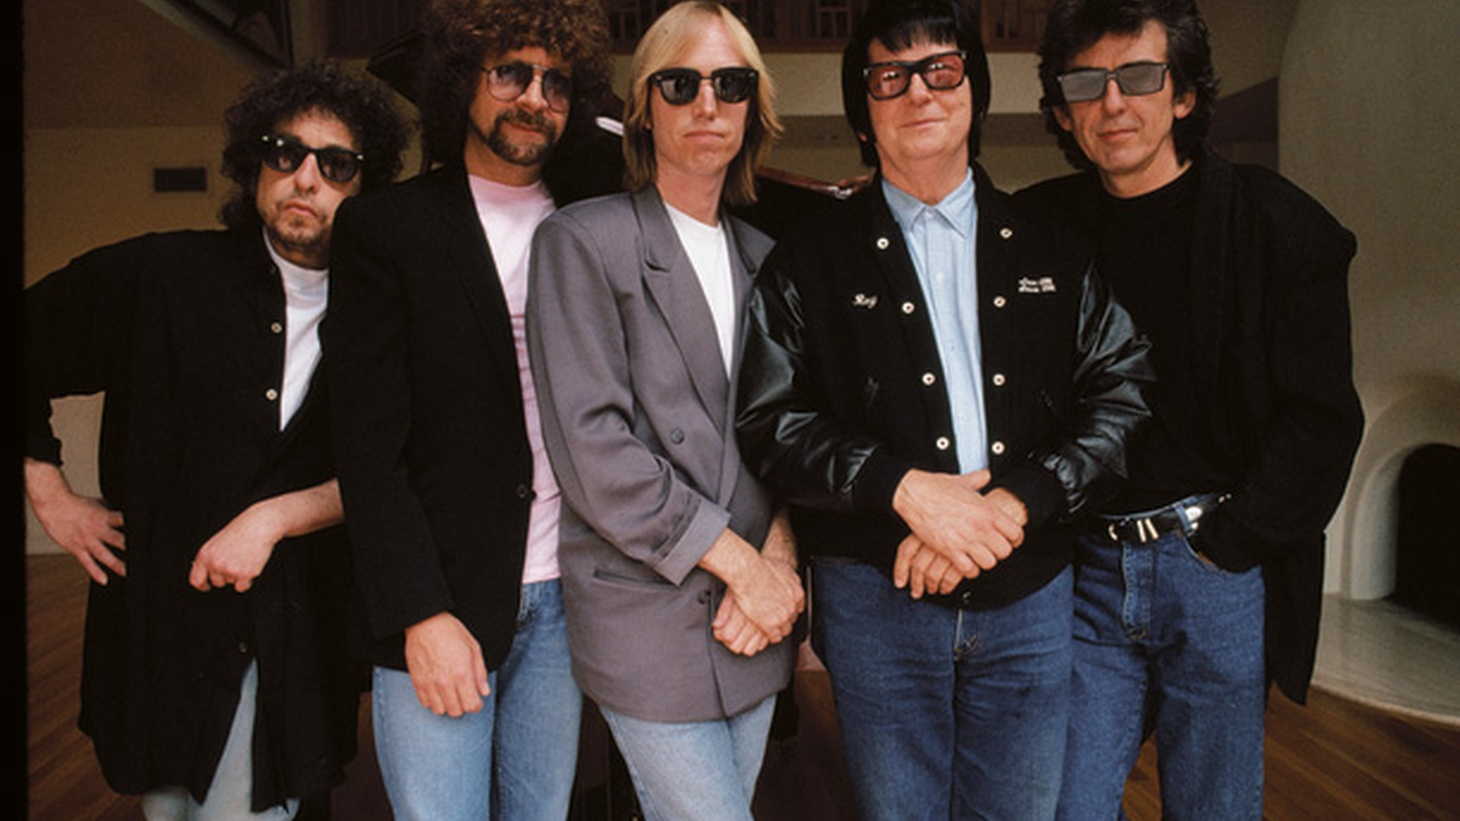 Bob Dylan, George Harrison, Tom Petty, Jeff Lynne, and Roy Orbison aka The Traveling Wilburys formed out of friendship. This super group released an amazing album that garnered a Grammy and countless accolades in 1988.